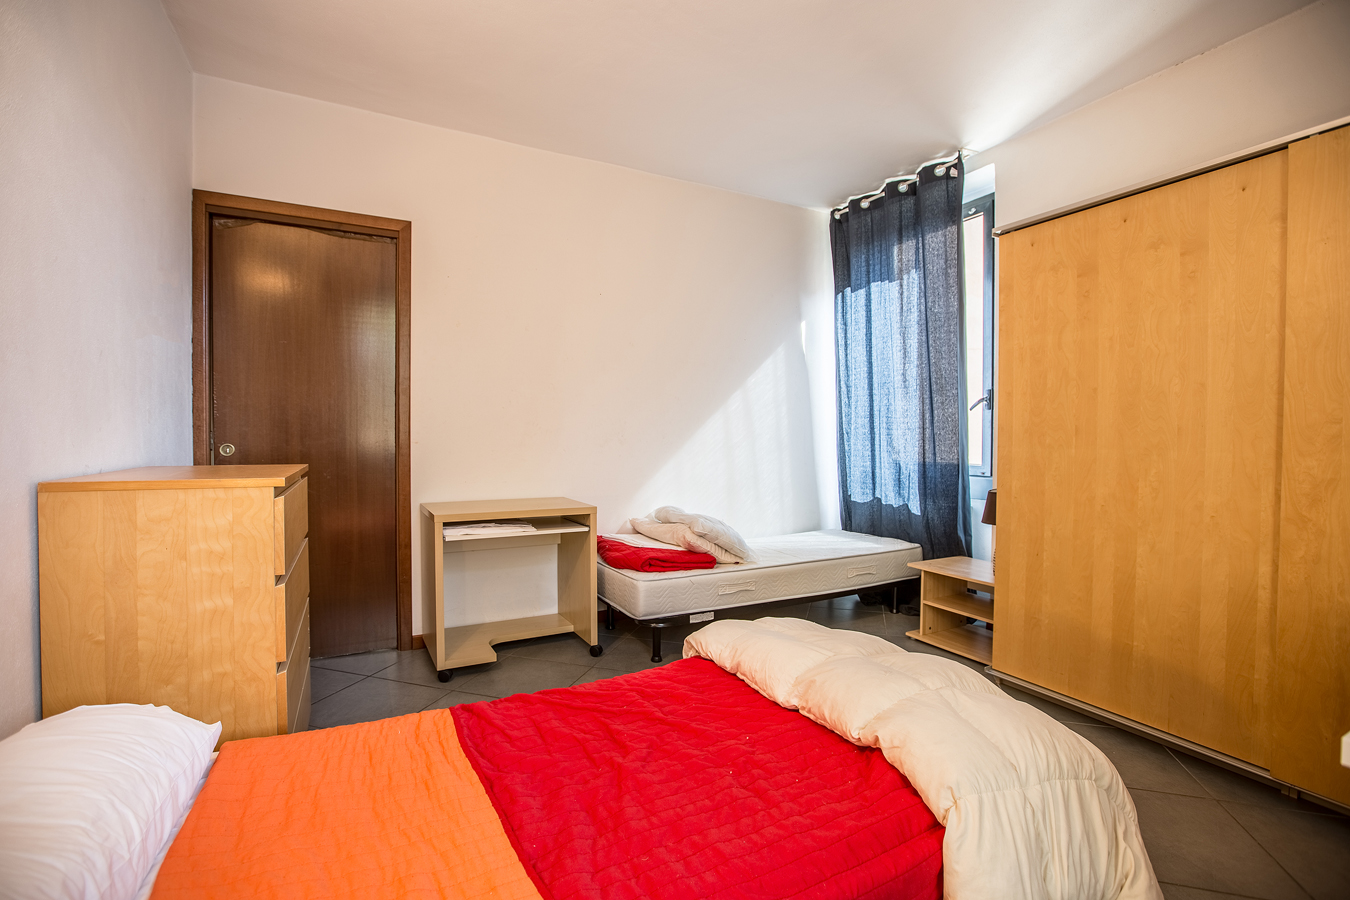 Student Accomodation for rent in double room in Via Gaetano Osculati, 15, in Milano, Italy